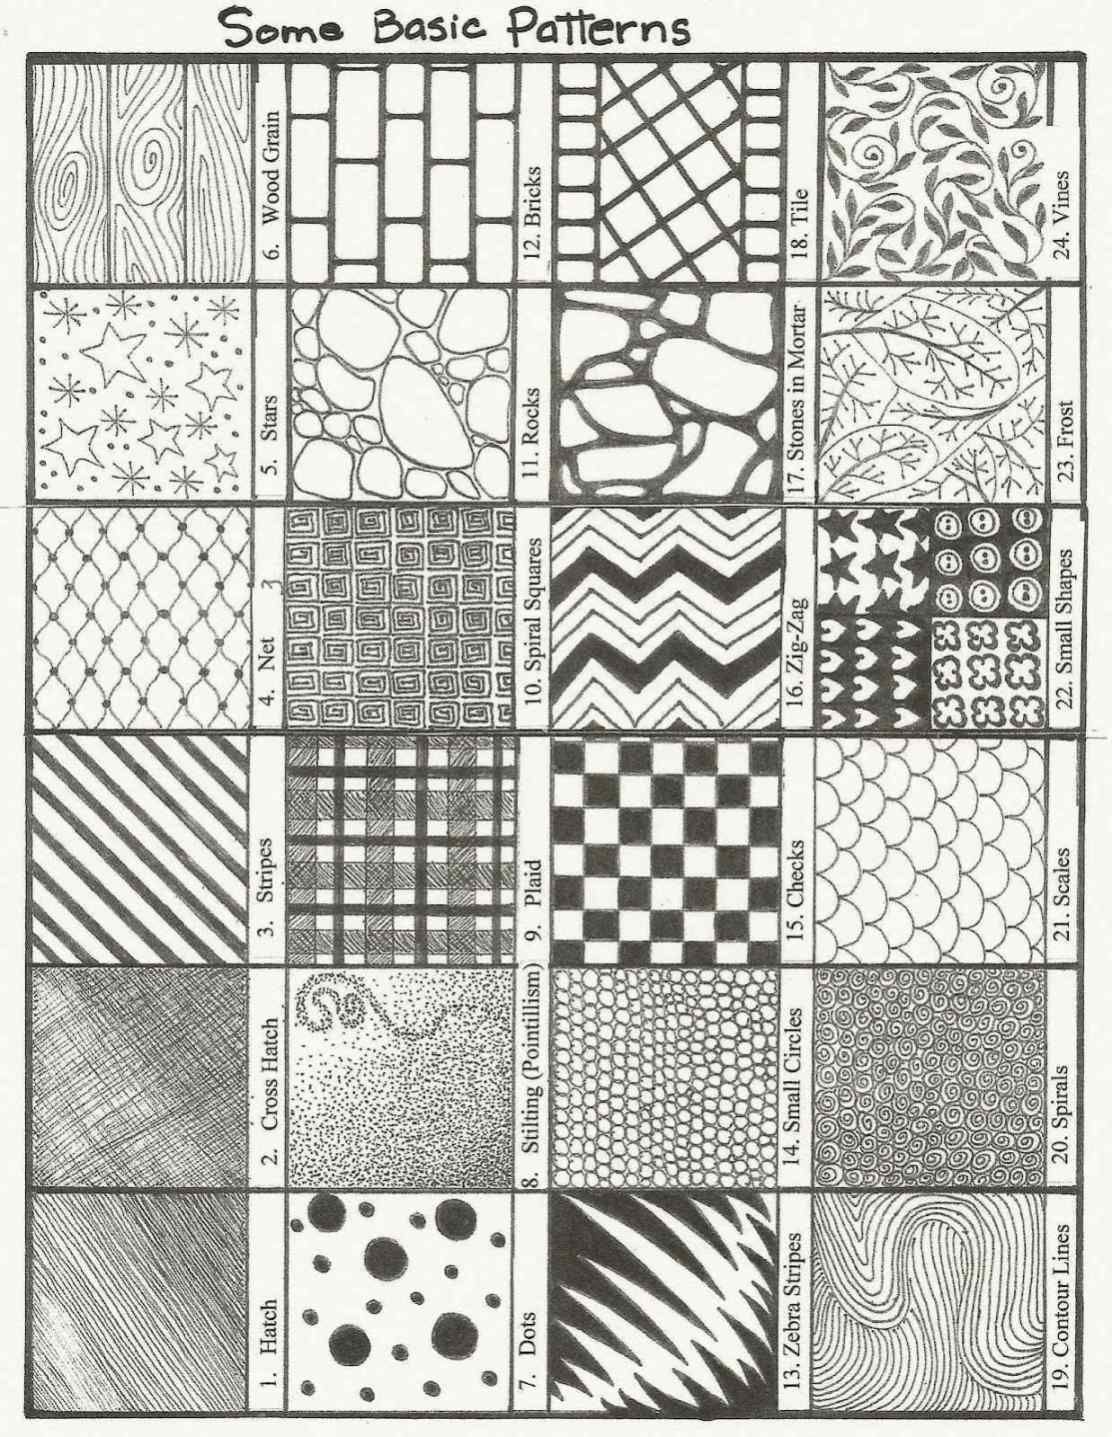 20 Awesome Designs To Draw Patterns Easy Ideas Prekhome Easy Patterns To Draw Cool Patterns To Draw Pattern Design Drawing,Bedroom Simple Ceiling Design With Cement